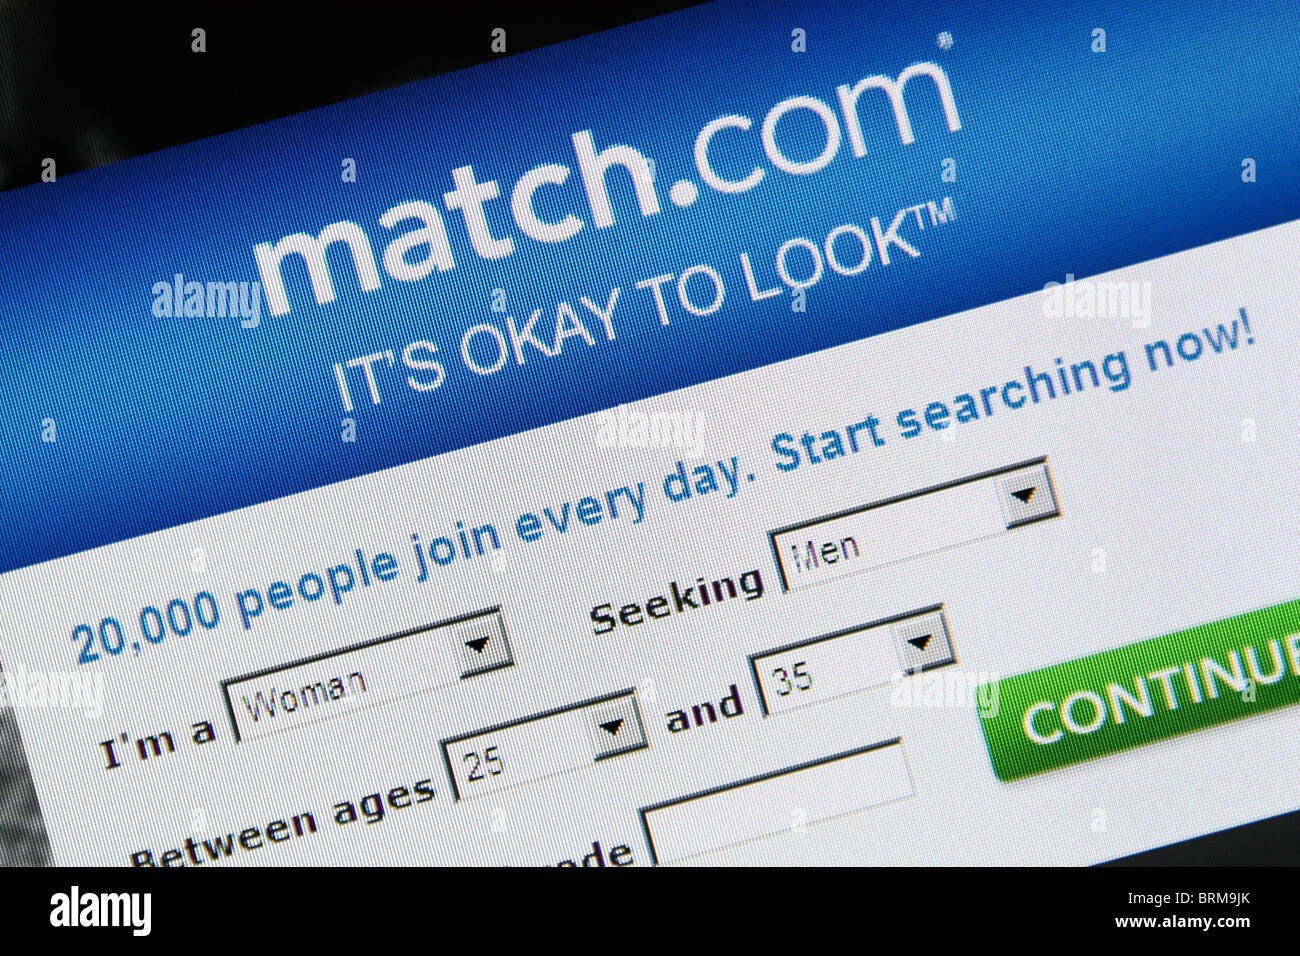 online dating match.com Stock Photo